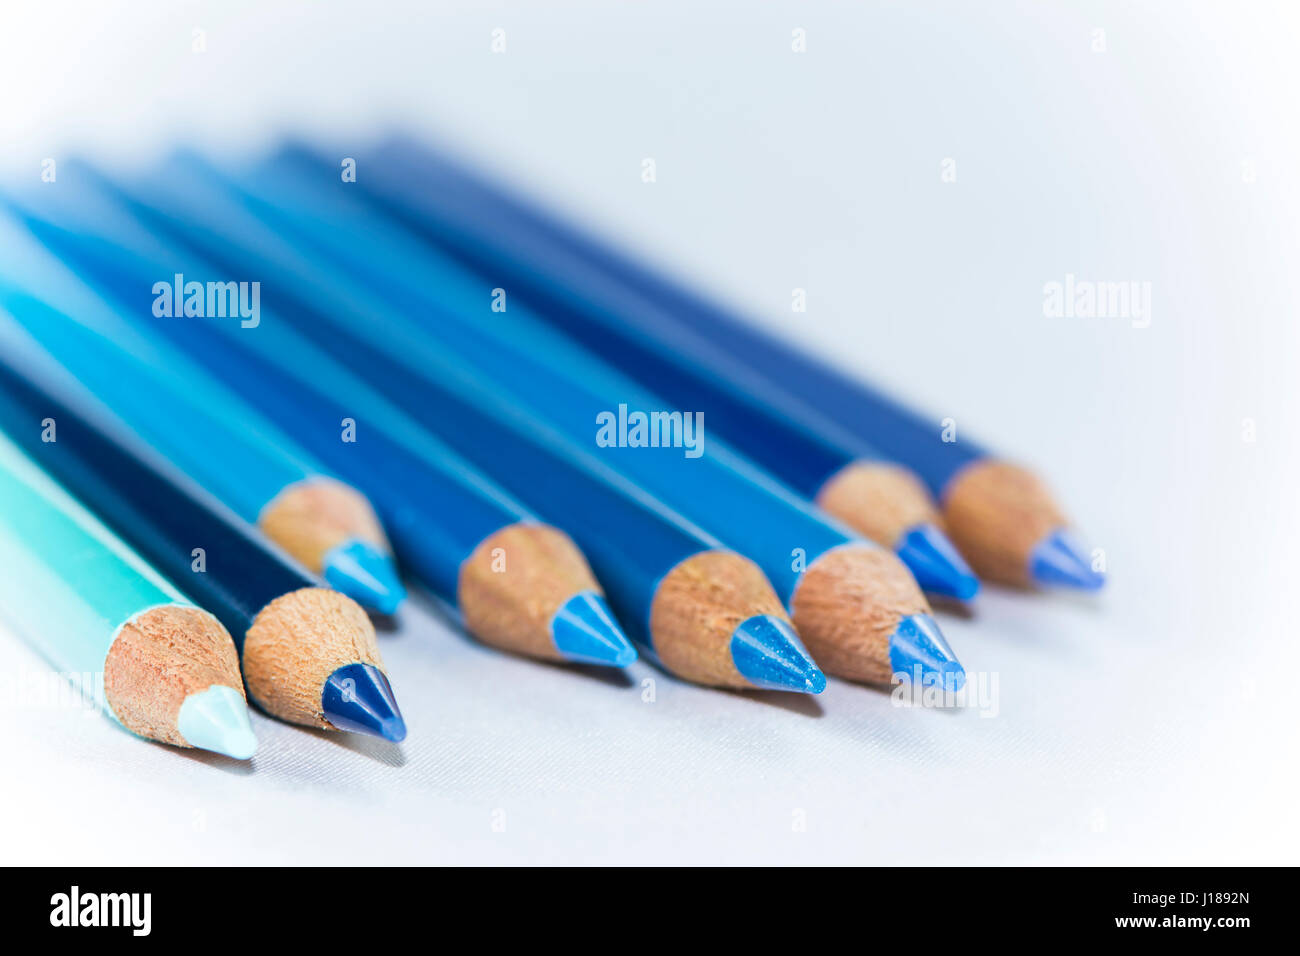 Eight blue pencils of different hues and shades lined up but stock